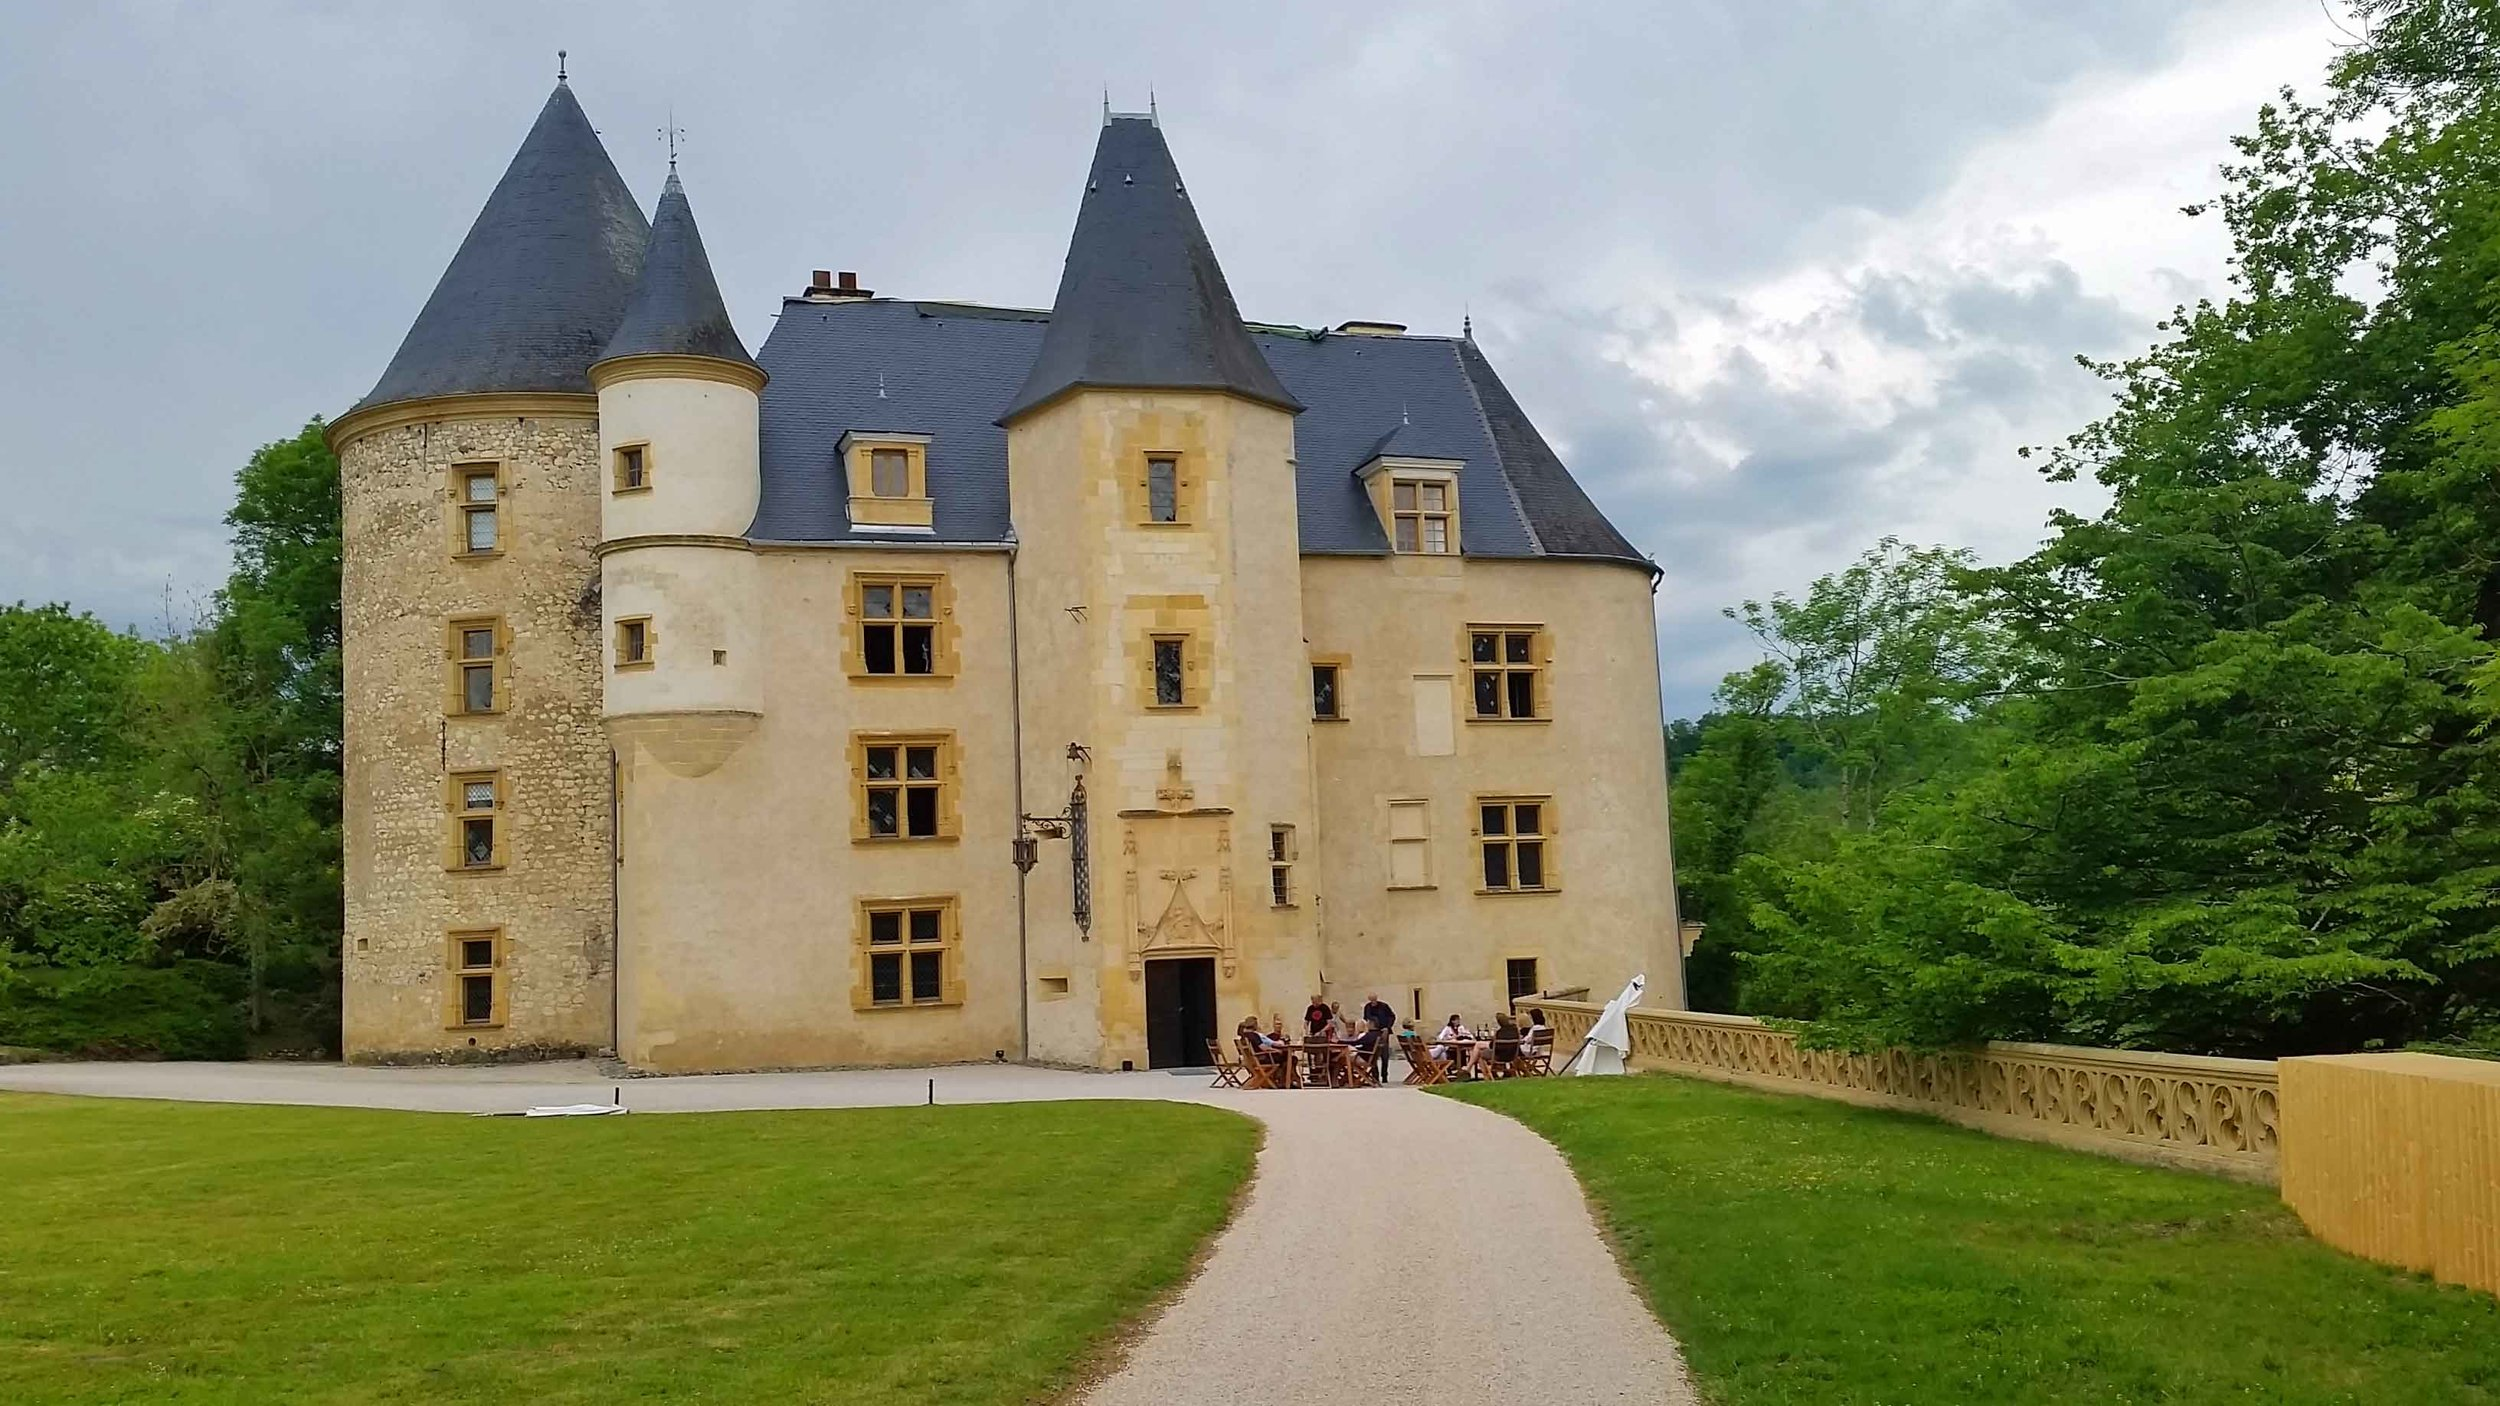 CHATEAU MARTORY - EXPERIENCE A FAIRY TALE VACATION IN A PRIVATE 16TH CENTURY CASTLE IN FRANCE!September 22 - 28, 2020